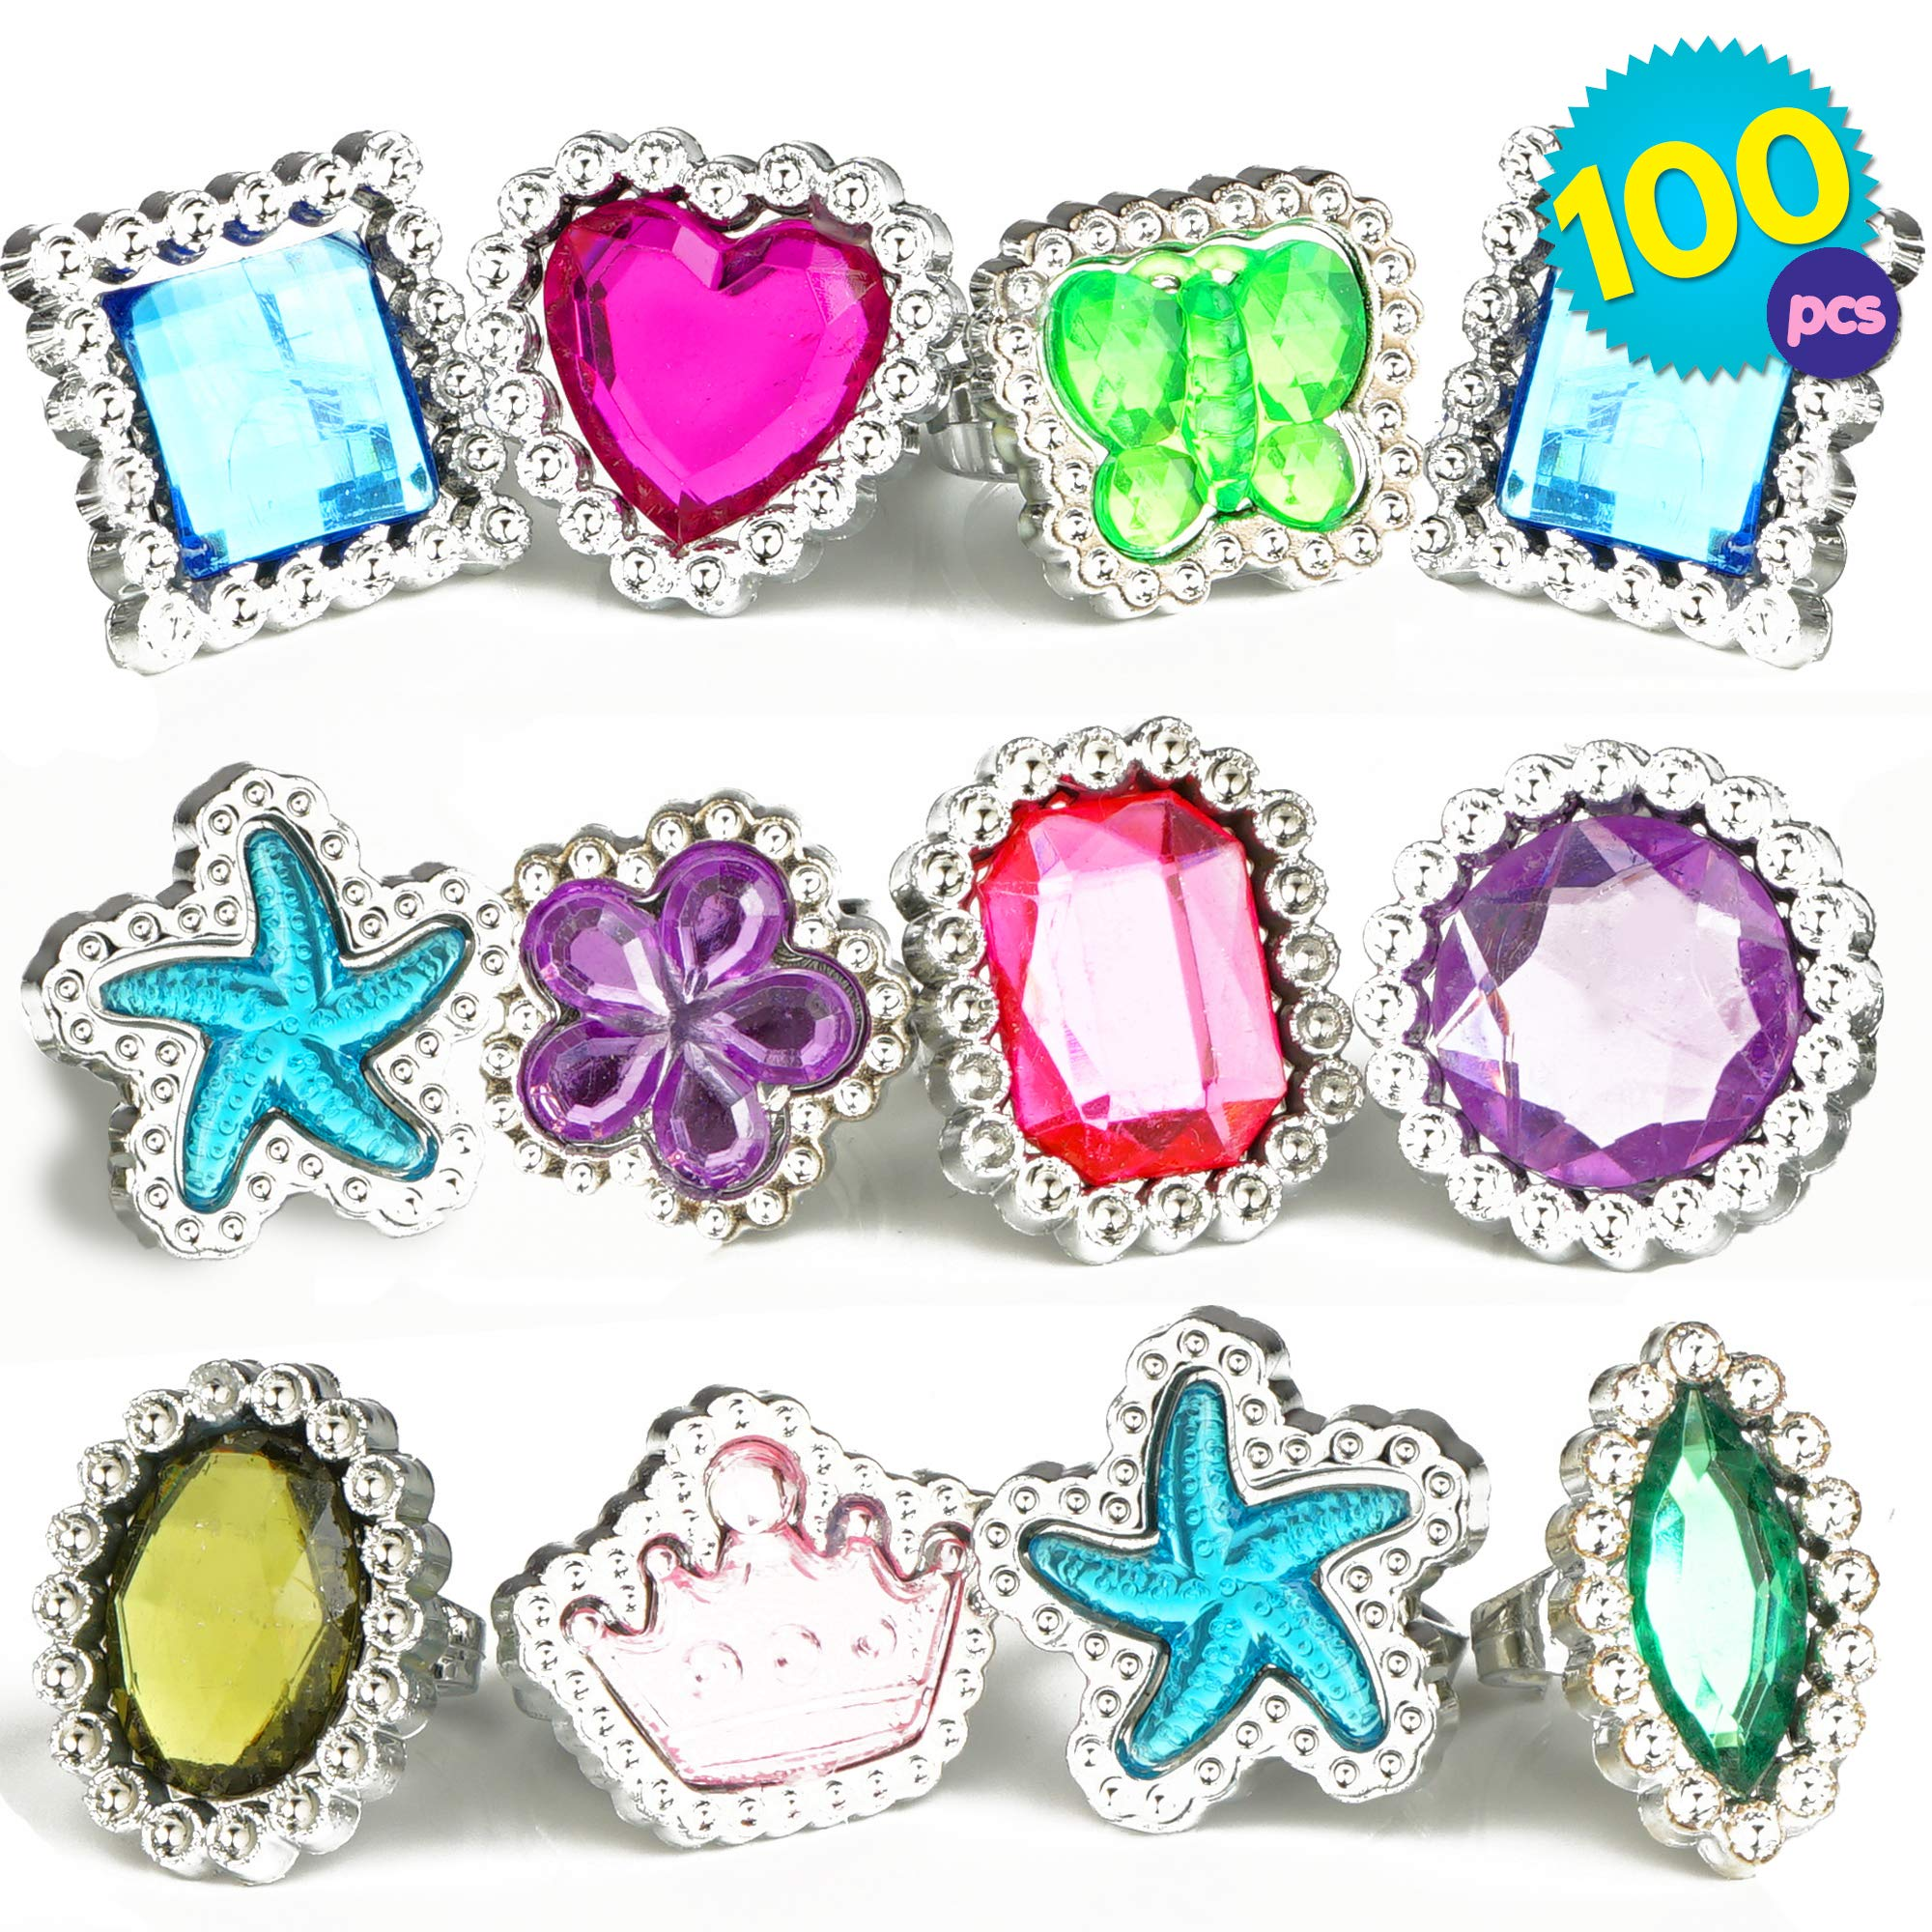 THE TWIDDLERS 100 Pcs Bulk Ring Toys   Colourful Rhinestone Gems Rings   10 Assorted Designs Jewellery Set   Dress Up Princess Accessories   Plastic Rings for Kids Girl   Birthday Party Party   Goody